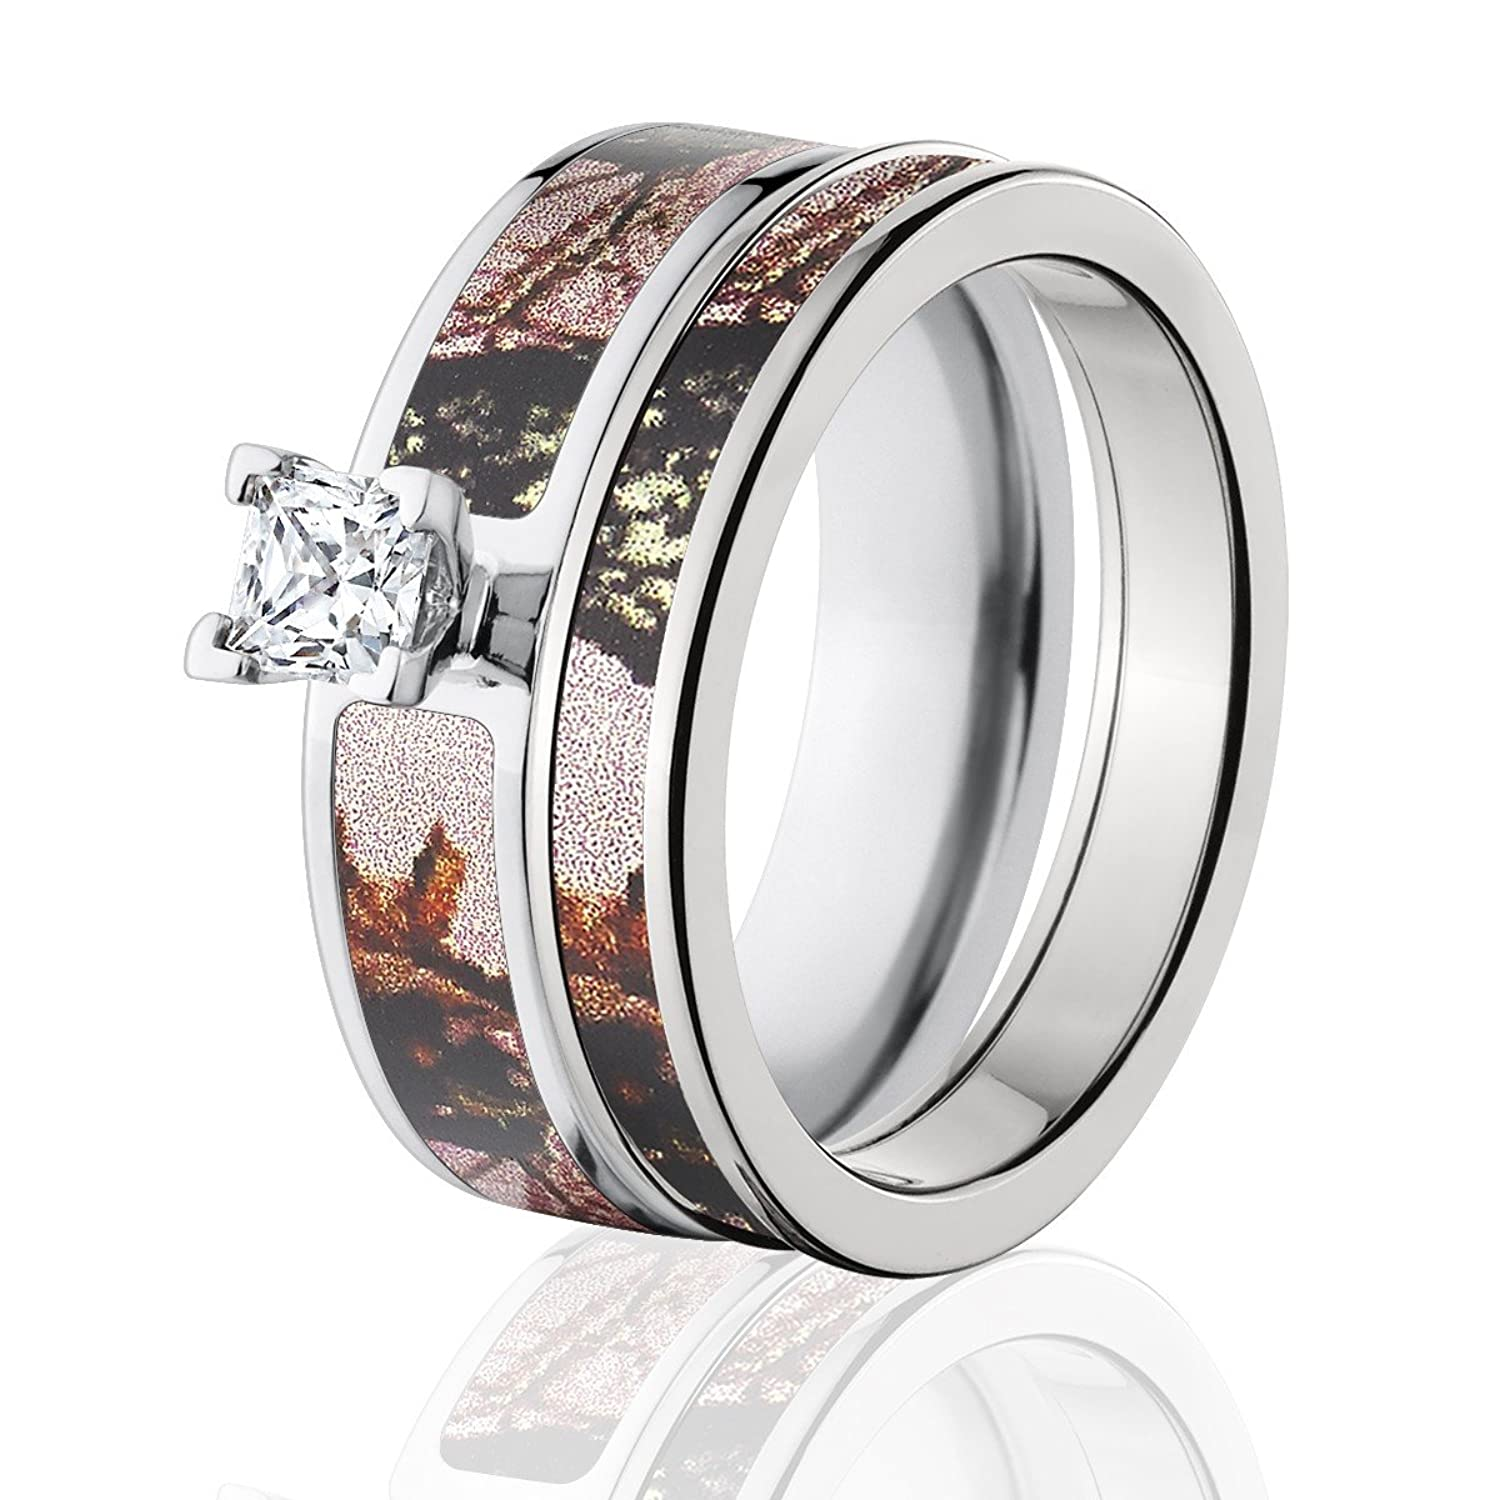 amazoncom mossy oak camo bridal set camo wedding rings pink break up camo rings jewelry - Mossy Oak Wedding Rings